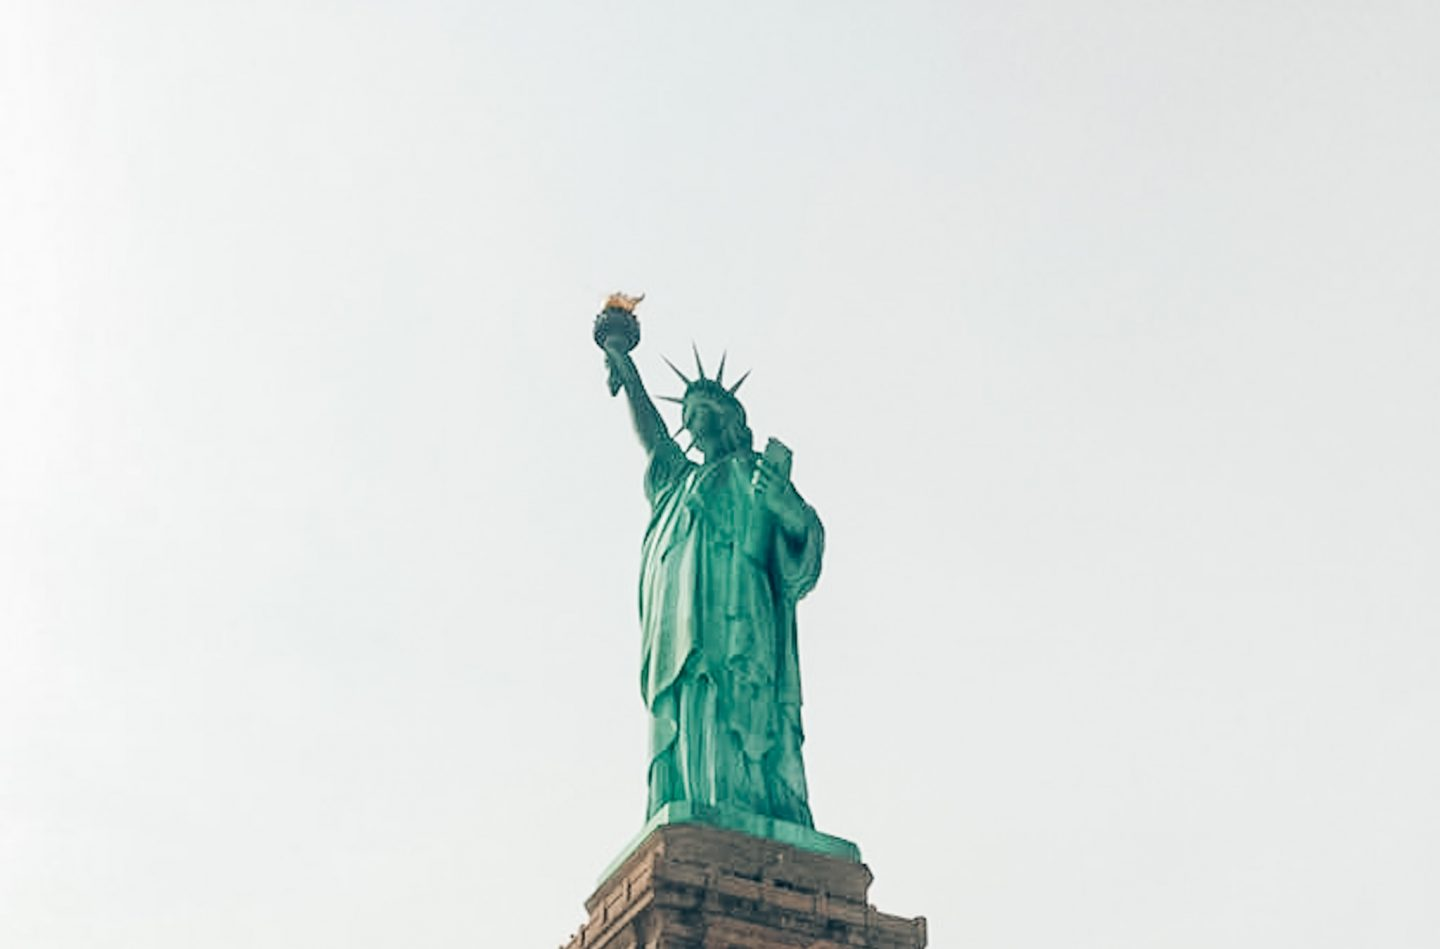 View of the Statue of Liberty from the Hudson River